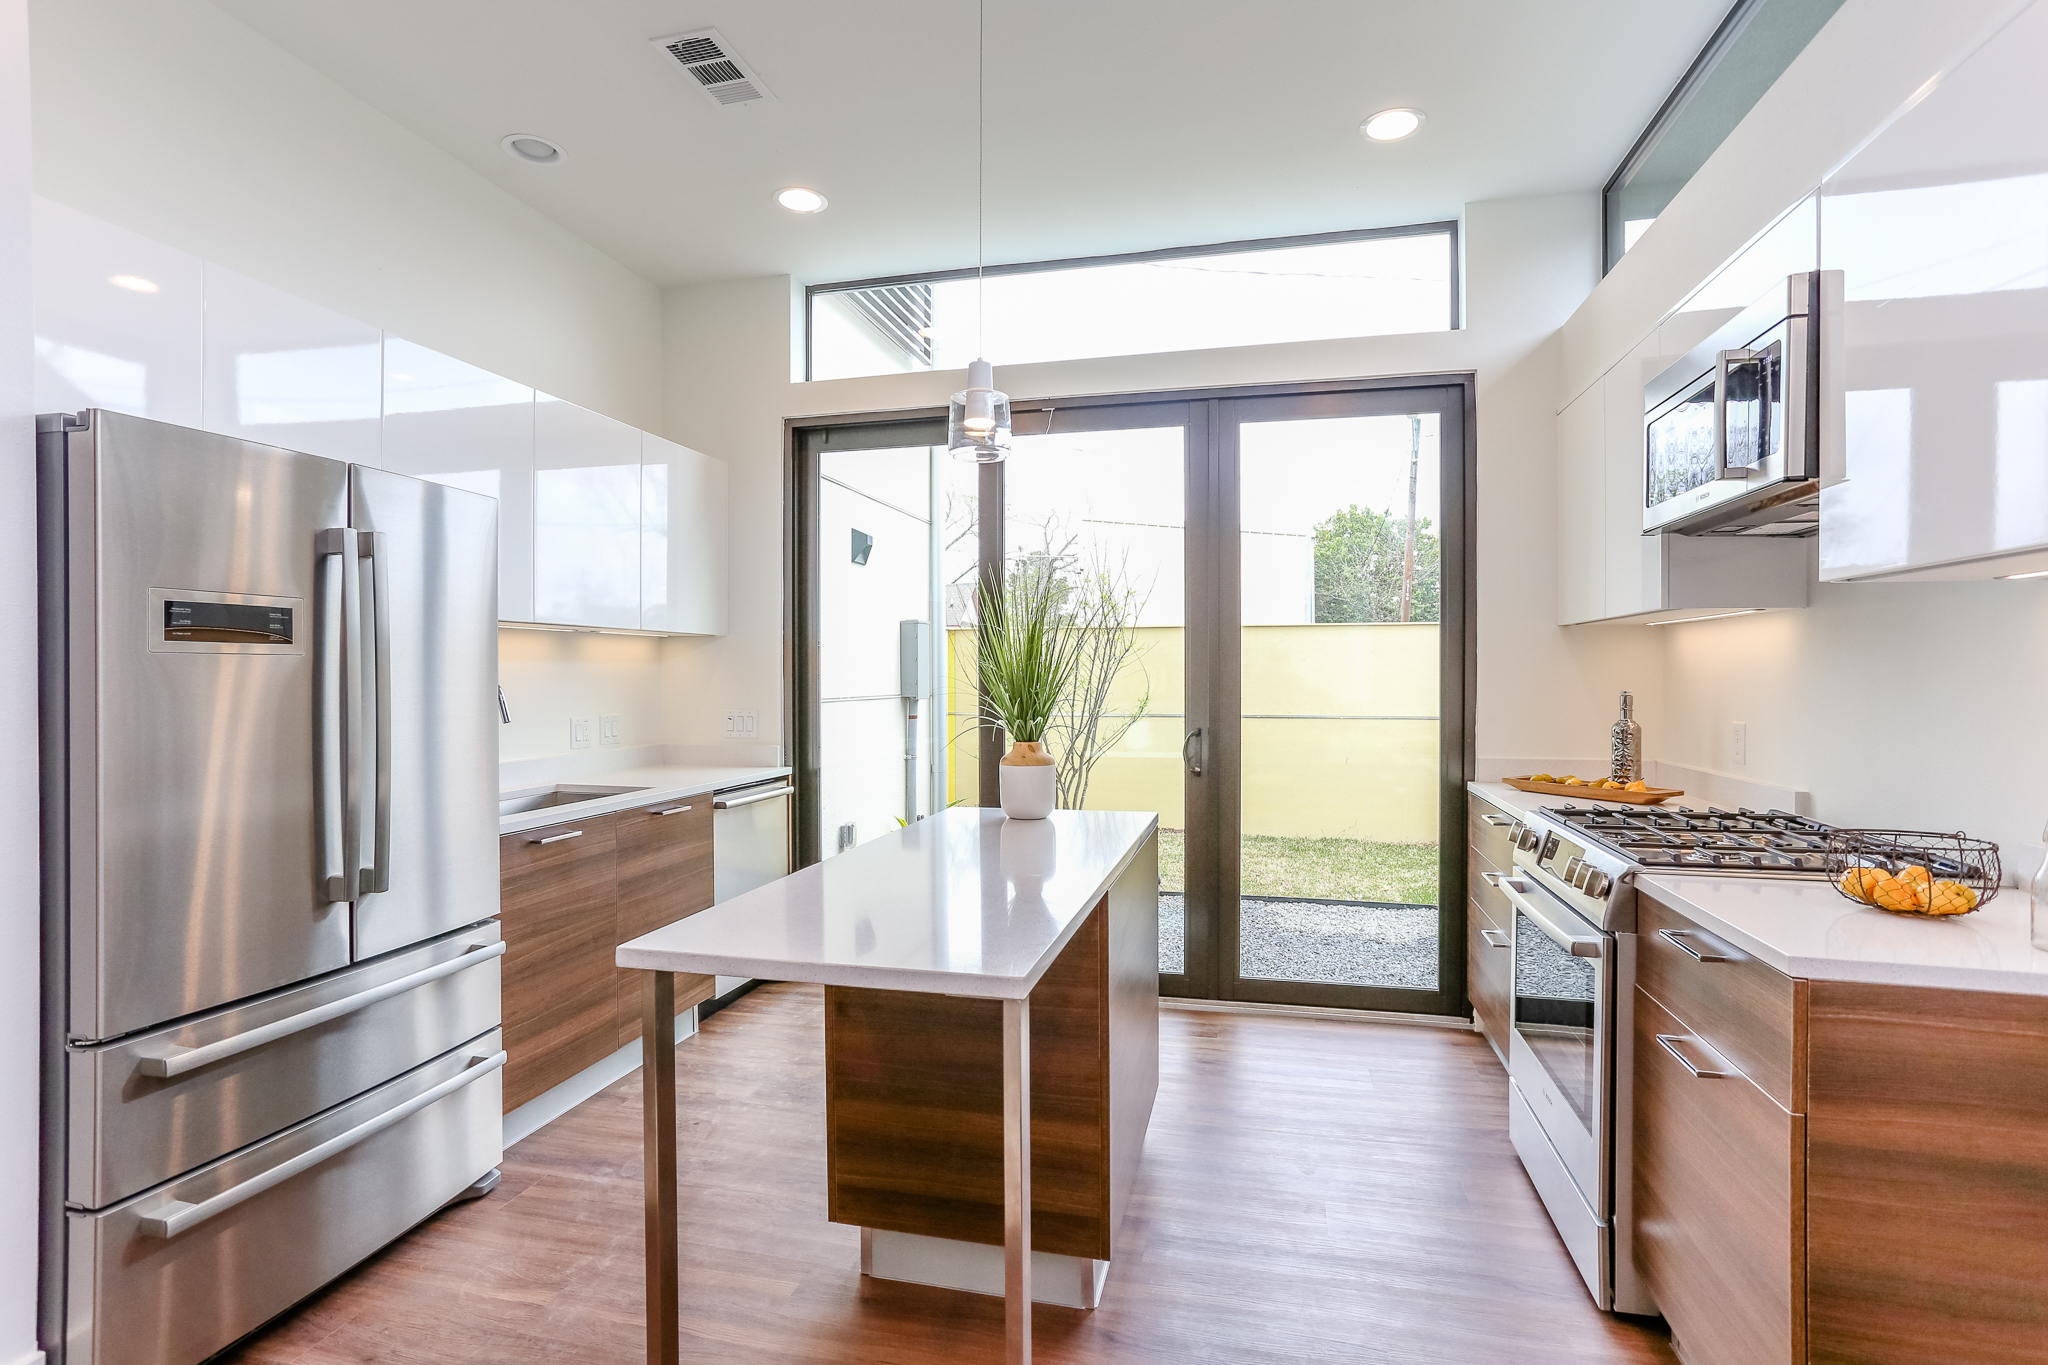 A beautifully appointed kitchen with sleek European style cabinetry, gleaming Silestone countertops, and stainless steel appliances opens onto an adjacent garden.